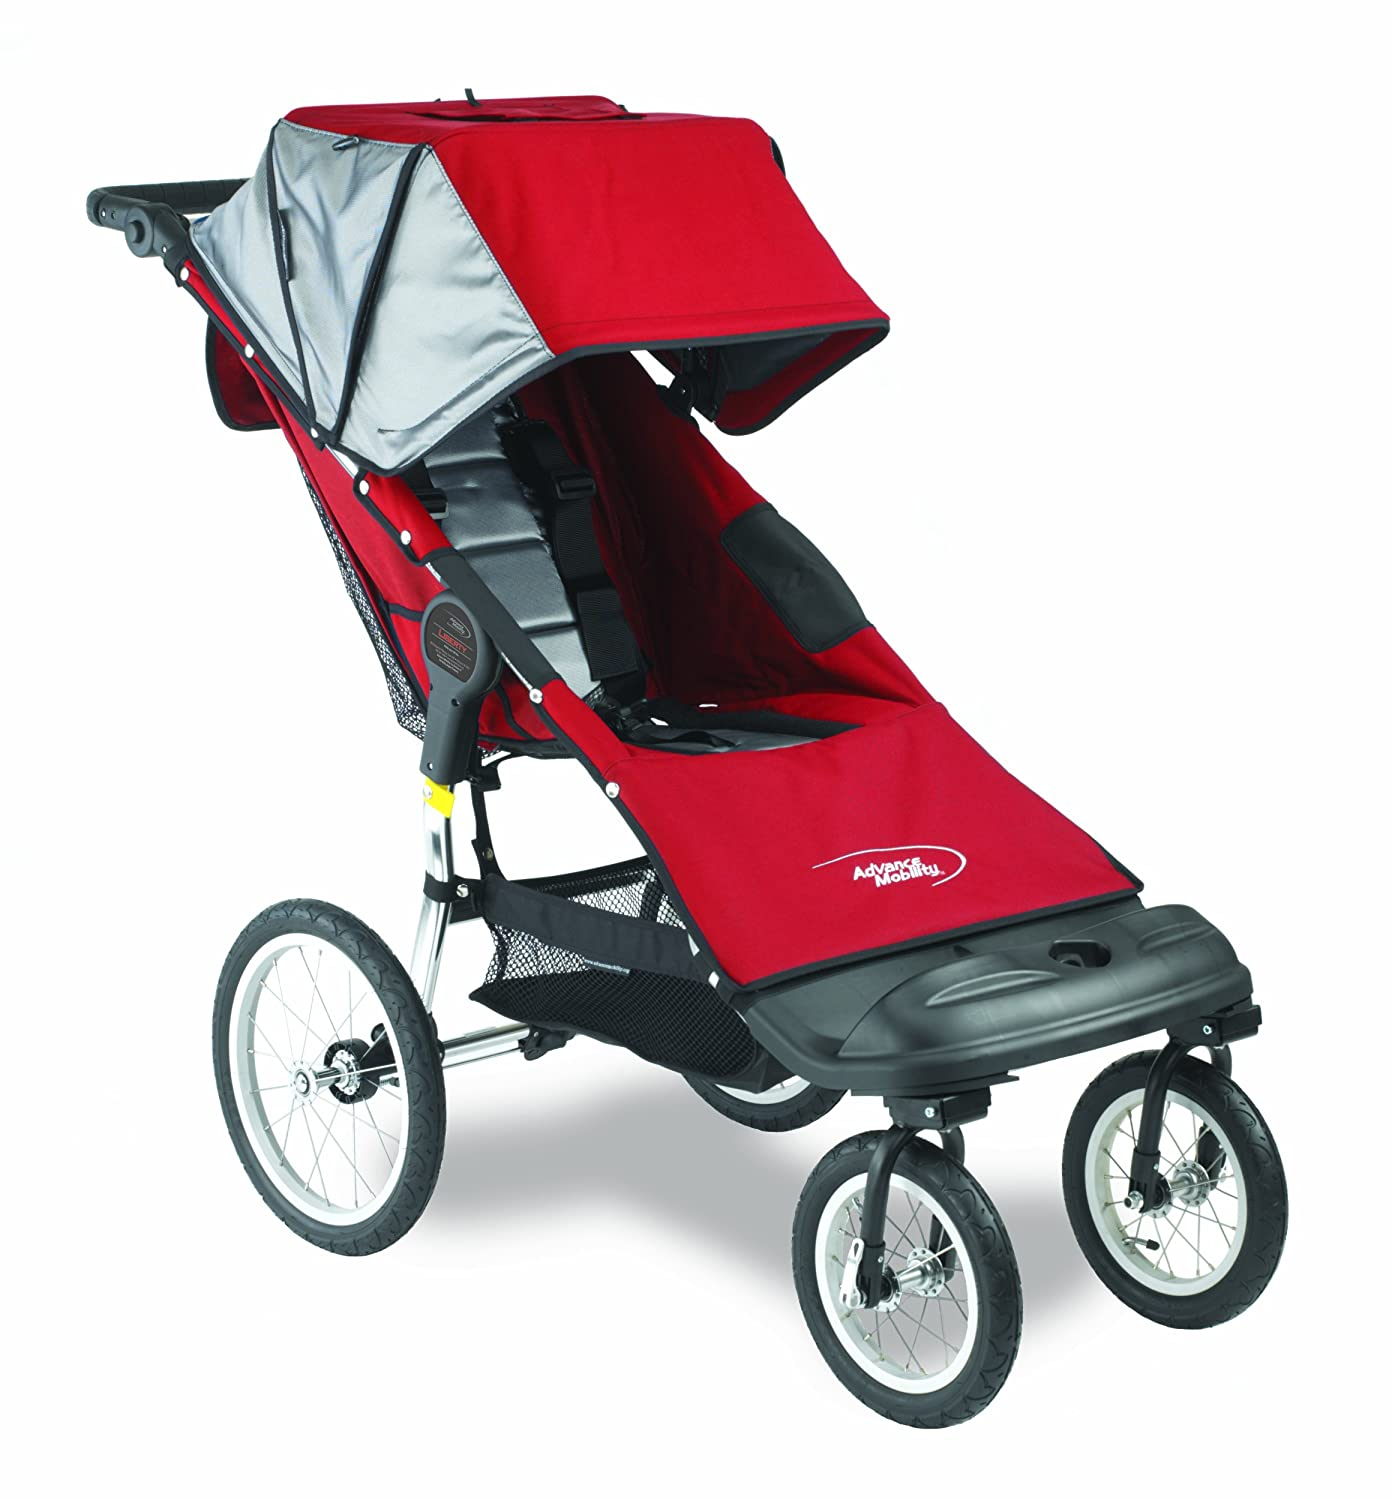 Amazon.com: Advance Liberty Push silla, Rojo de movilidad ...